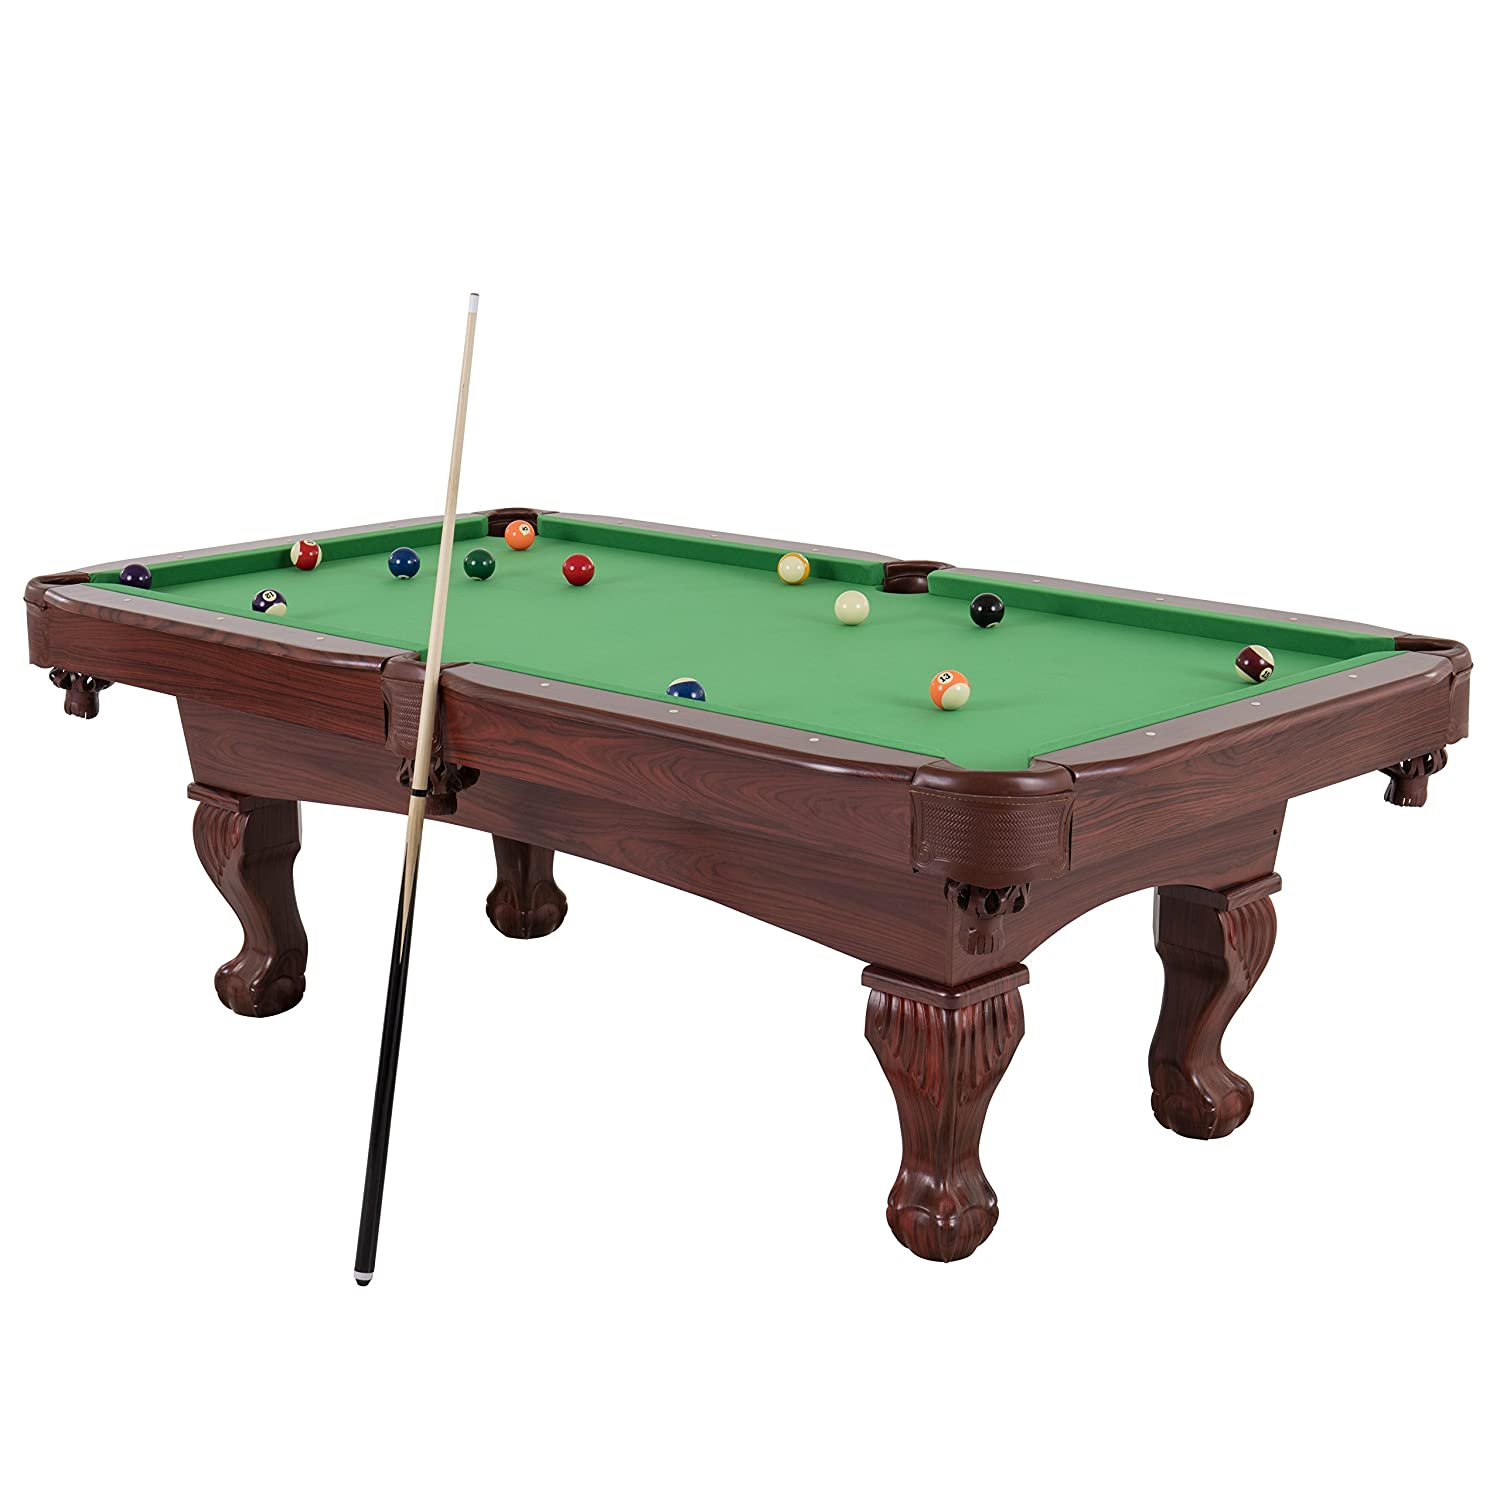 Pool Billiards Tables Amazoncom Pool Billiards - Olio pool table